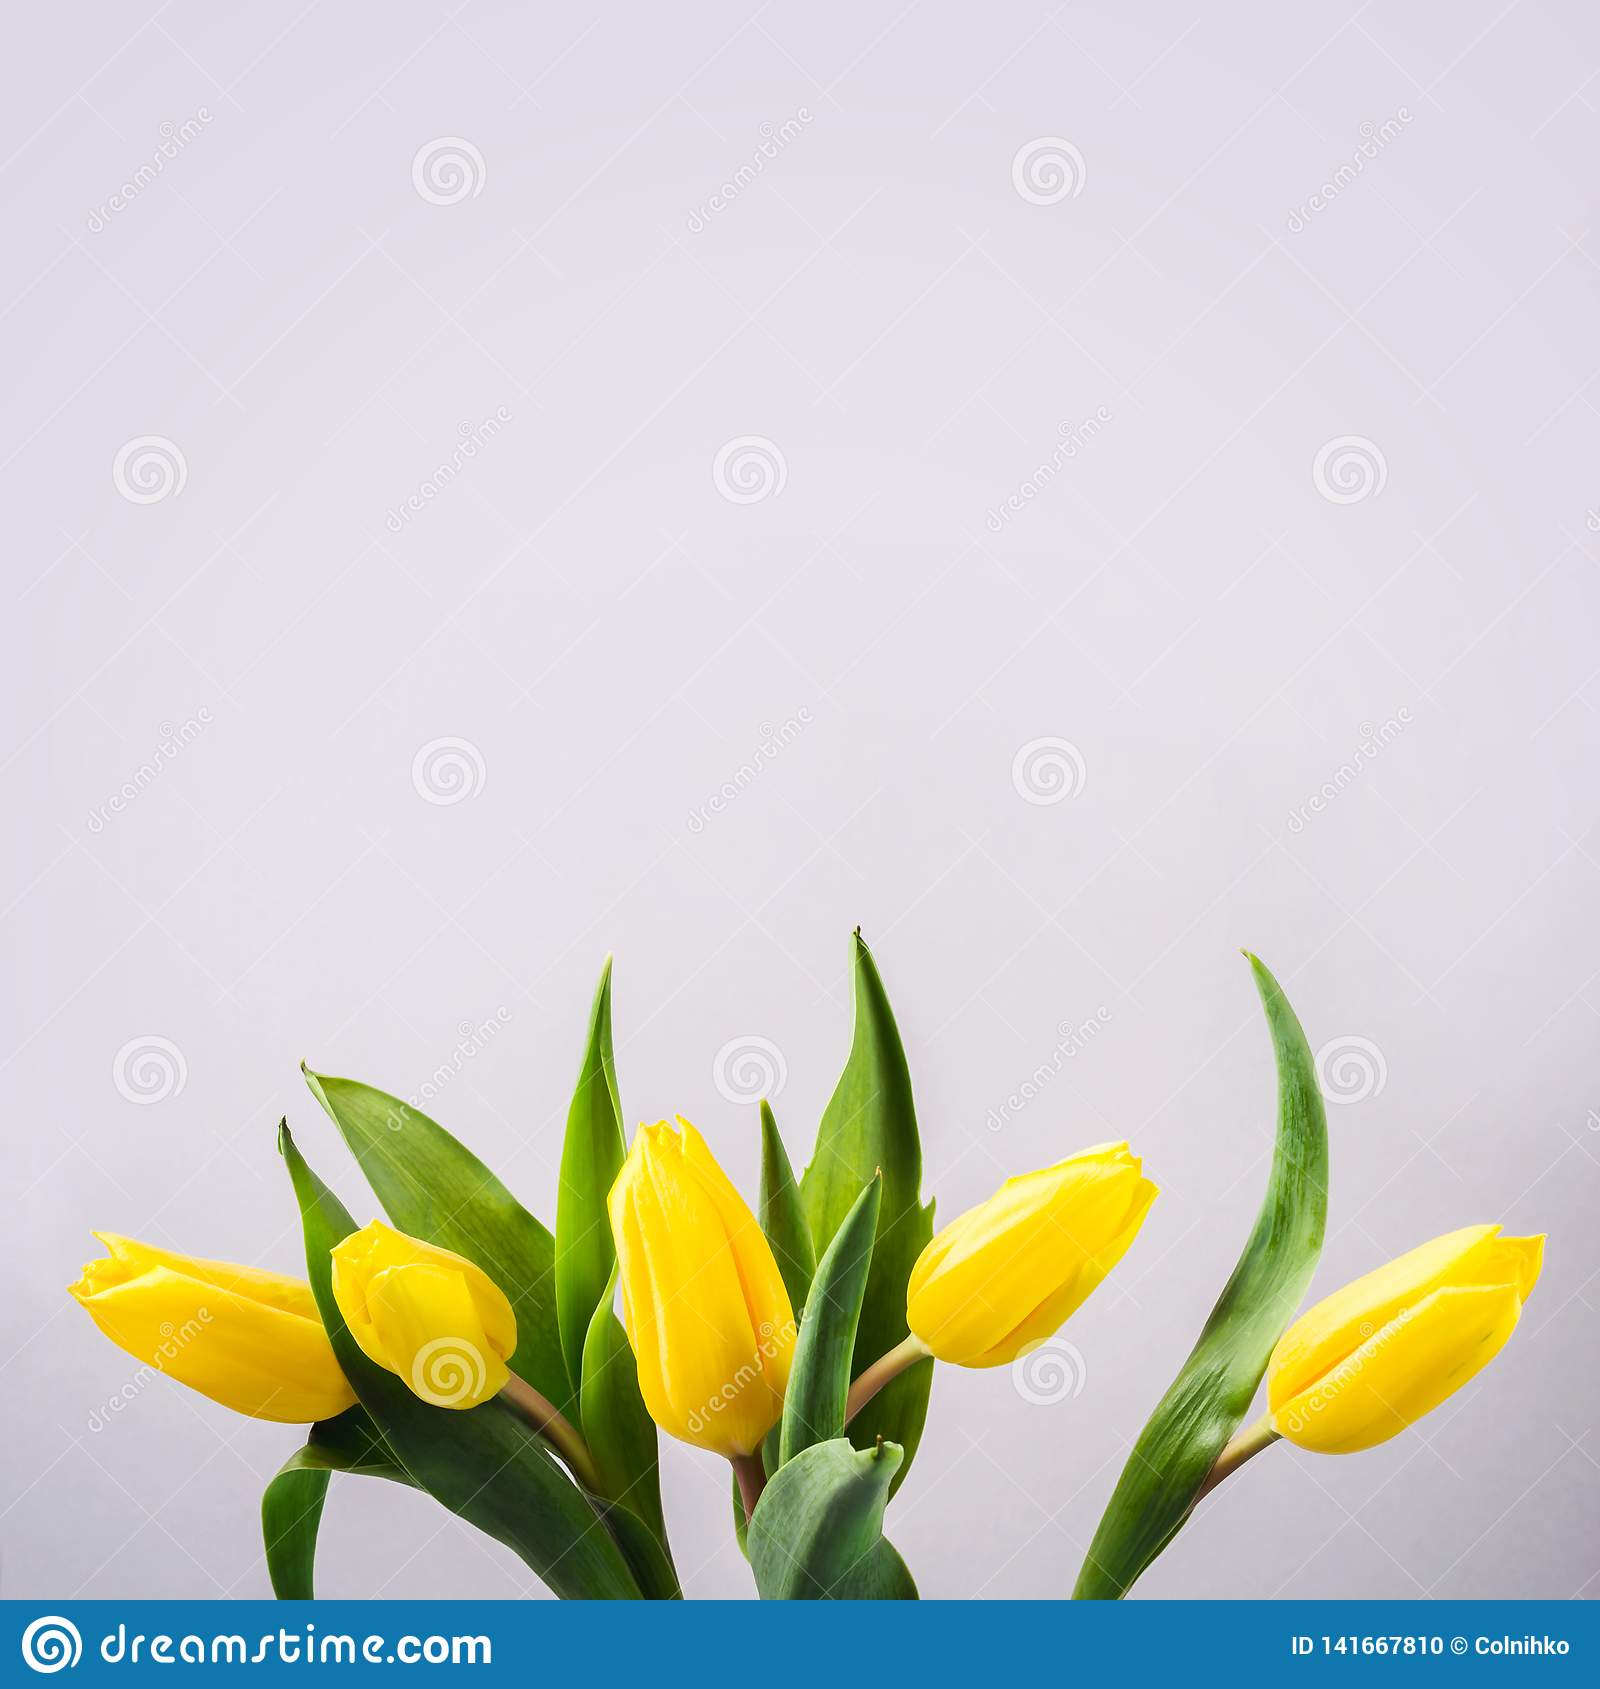 Beautiful yellow tulip flowers on gray background for greeting message. Holiday mock up